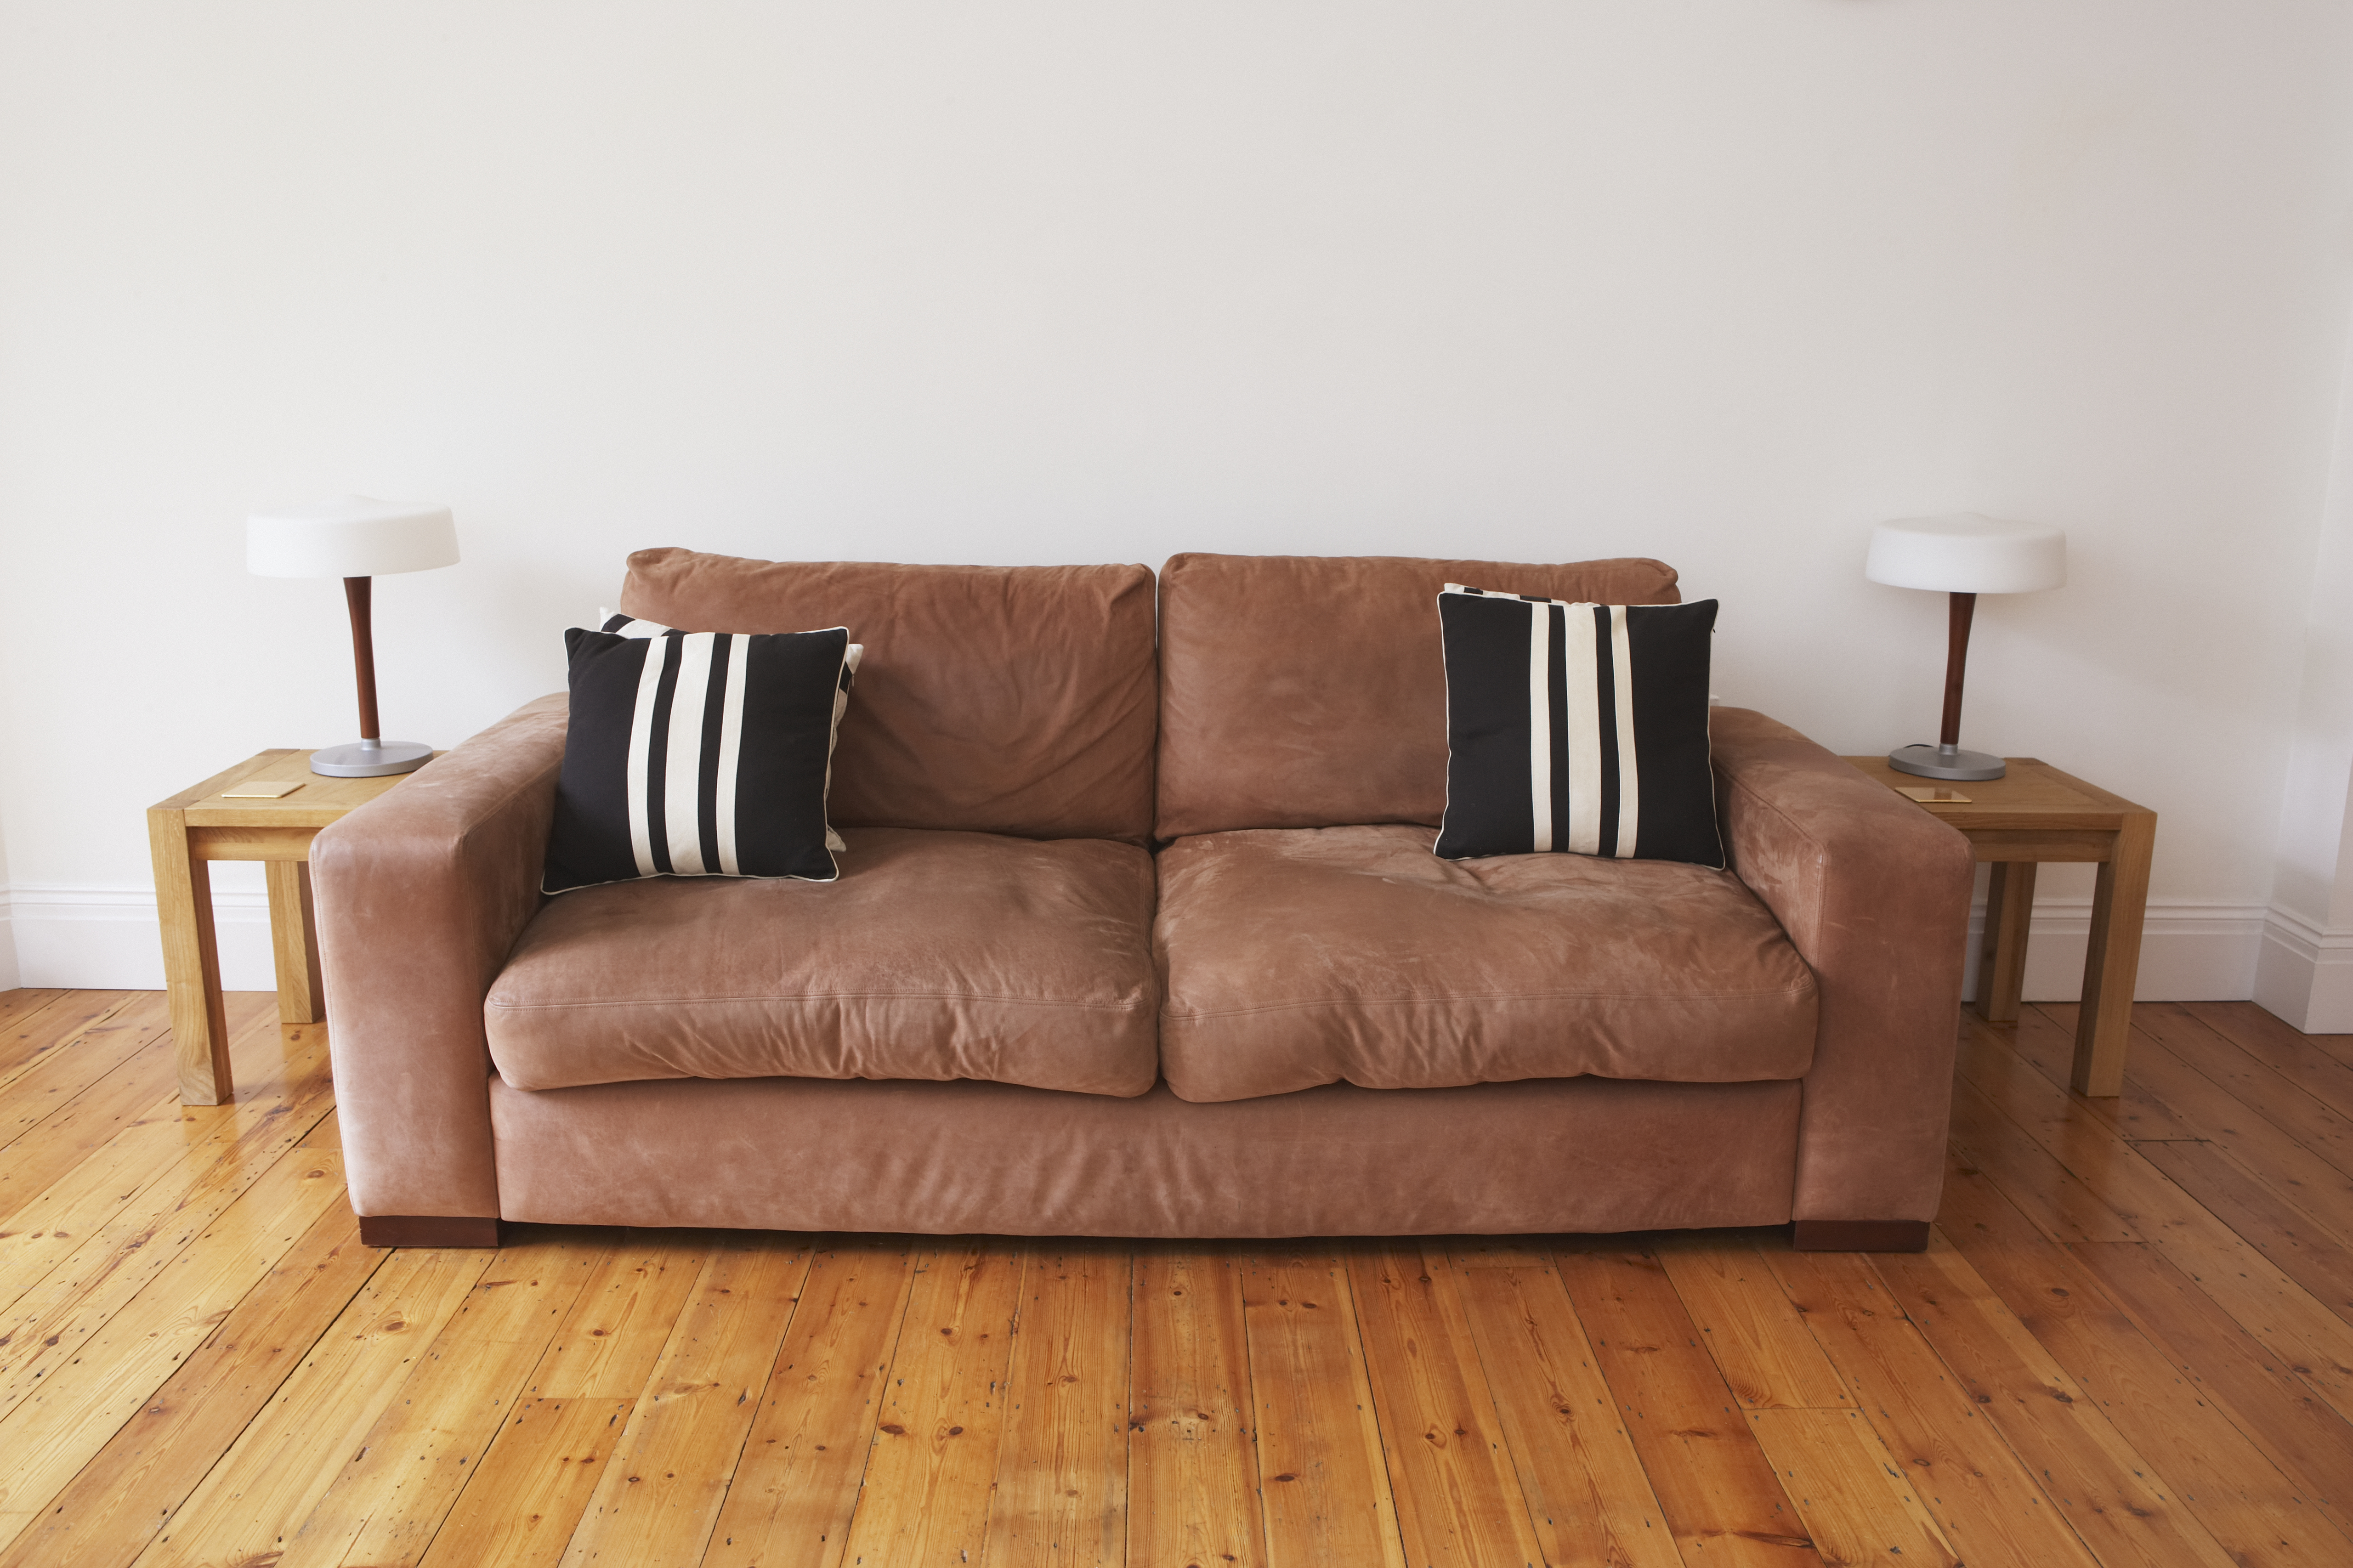 couch getty